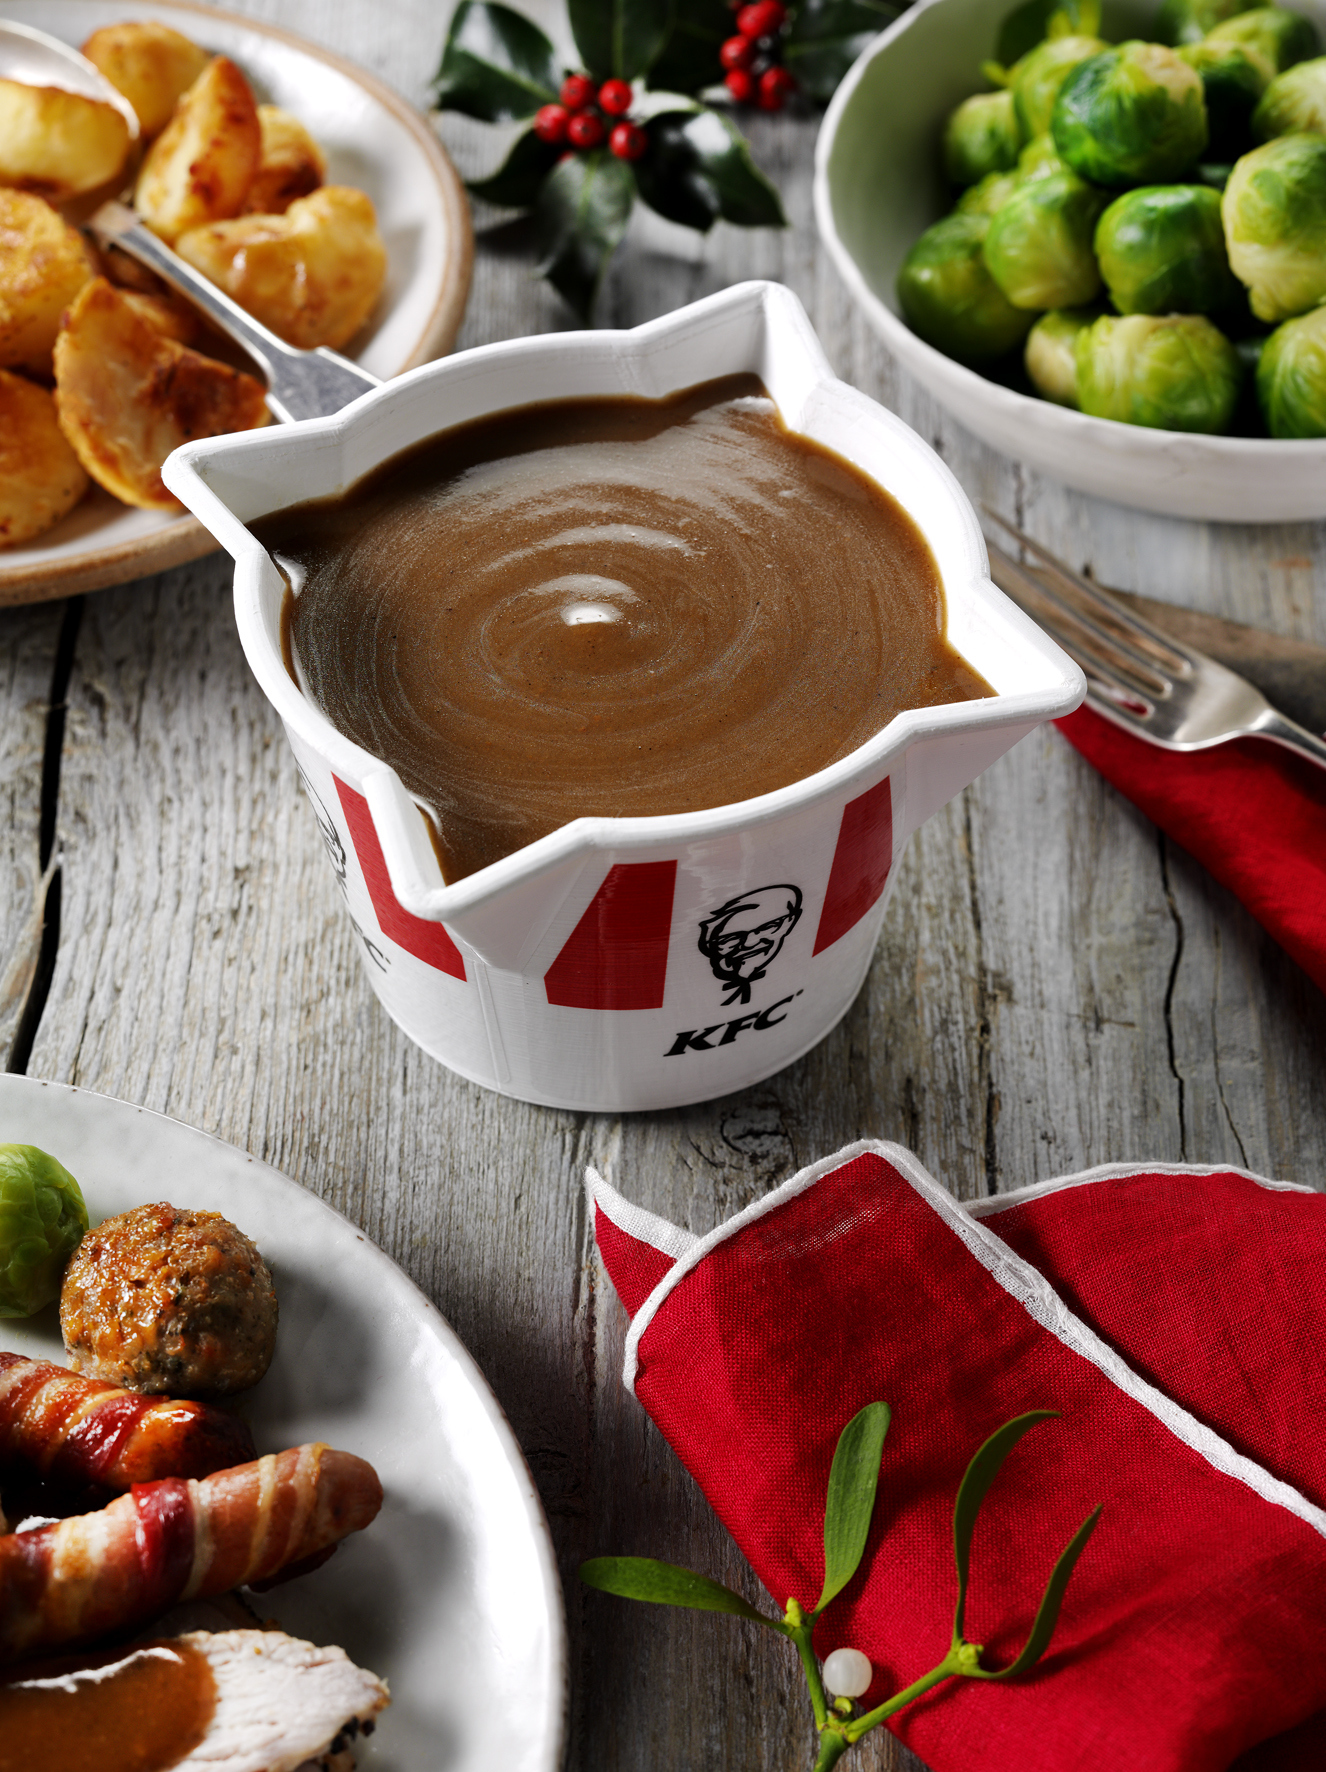 The KFC gravy bucket.